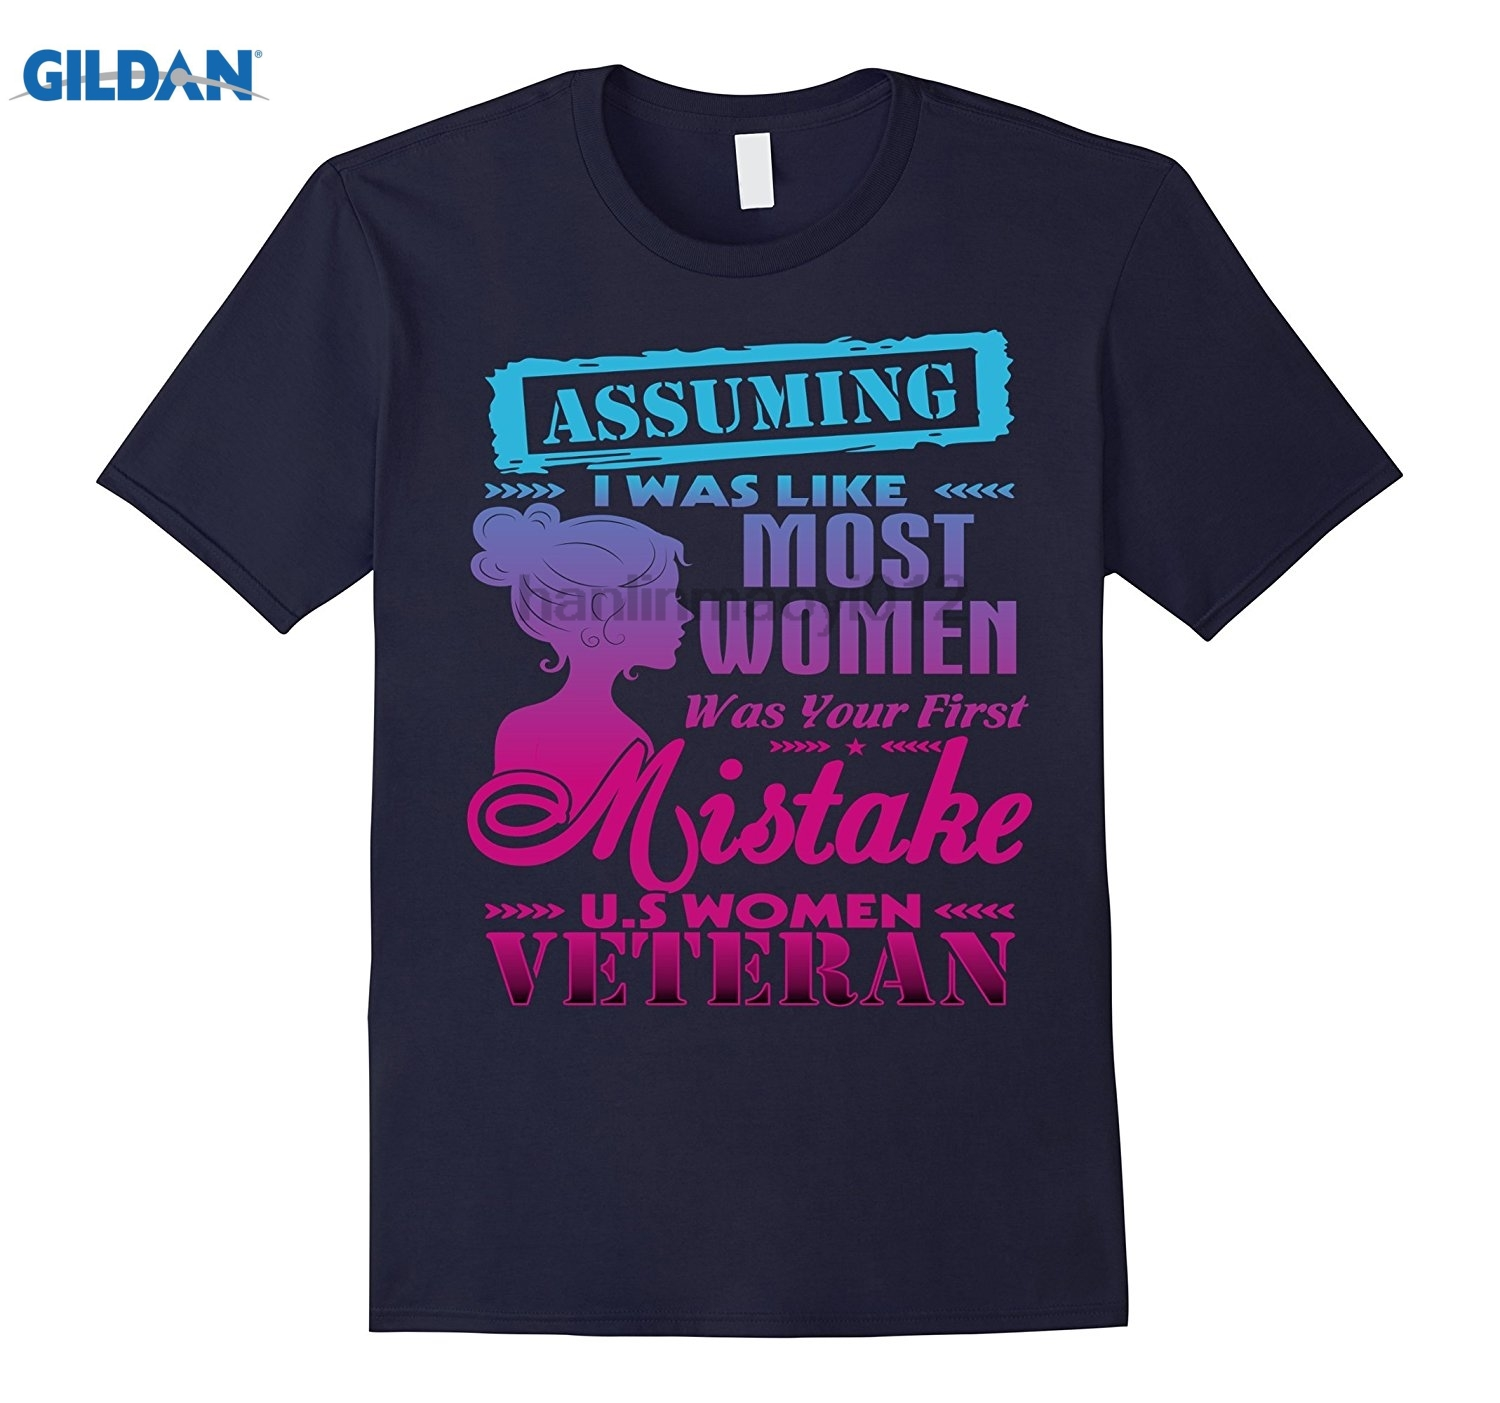 GILDAN U.S WOMEN VETERAN t shirts Mothers Day Ms. T-shirt ...